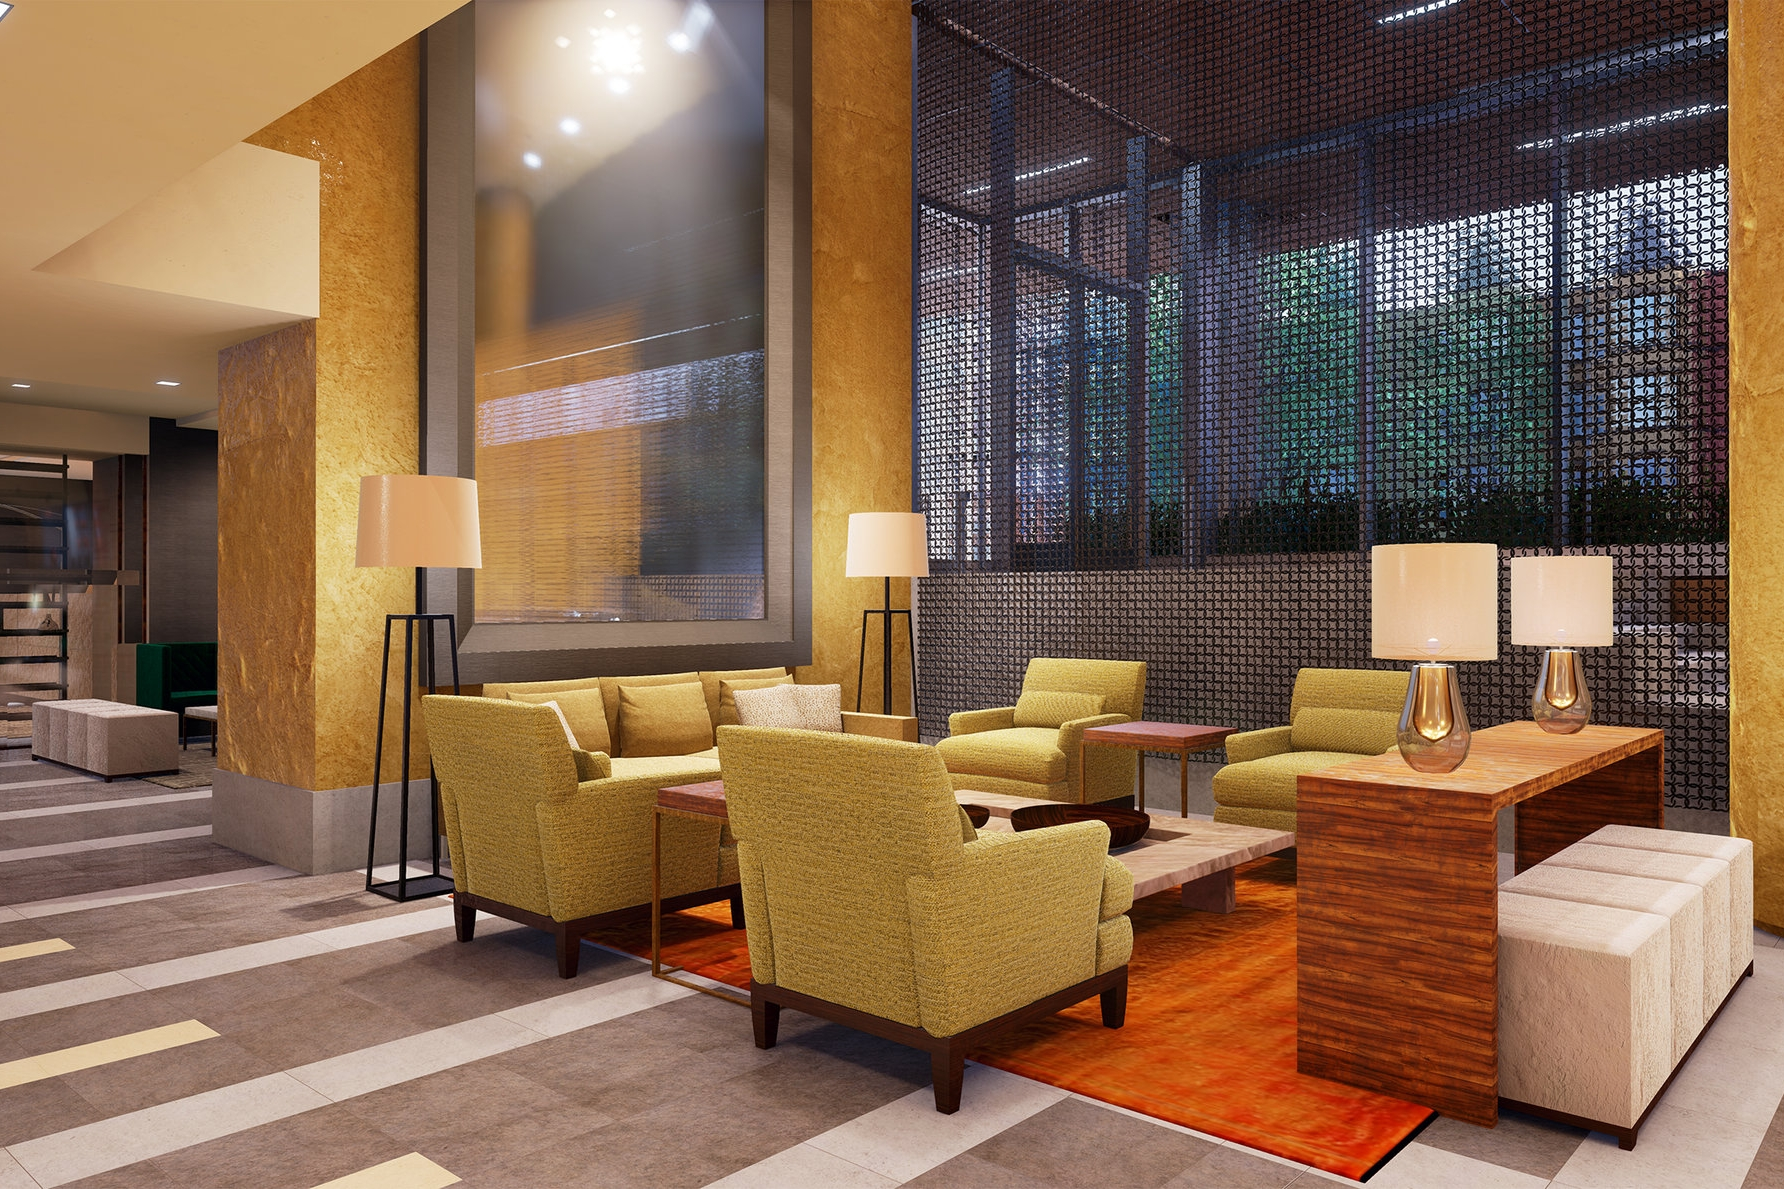 ResidentialThe Story Behind 2501 M Street Residences - How to reach your sales goals.